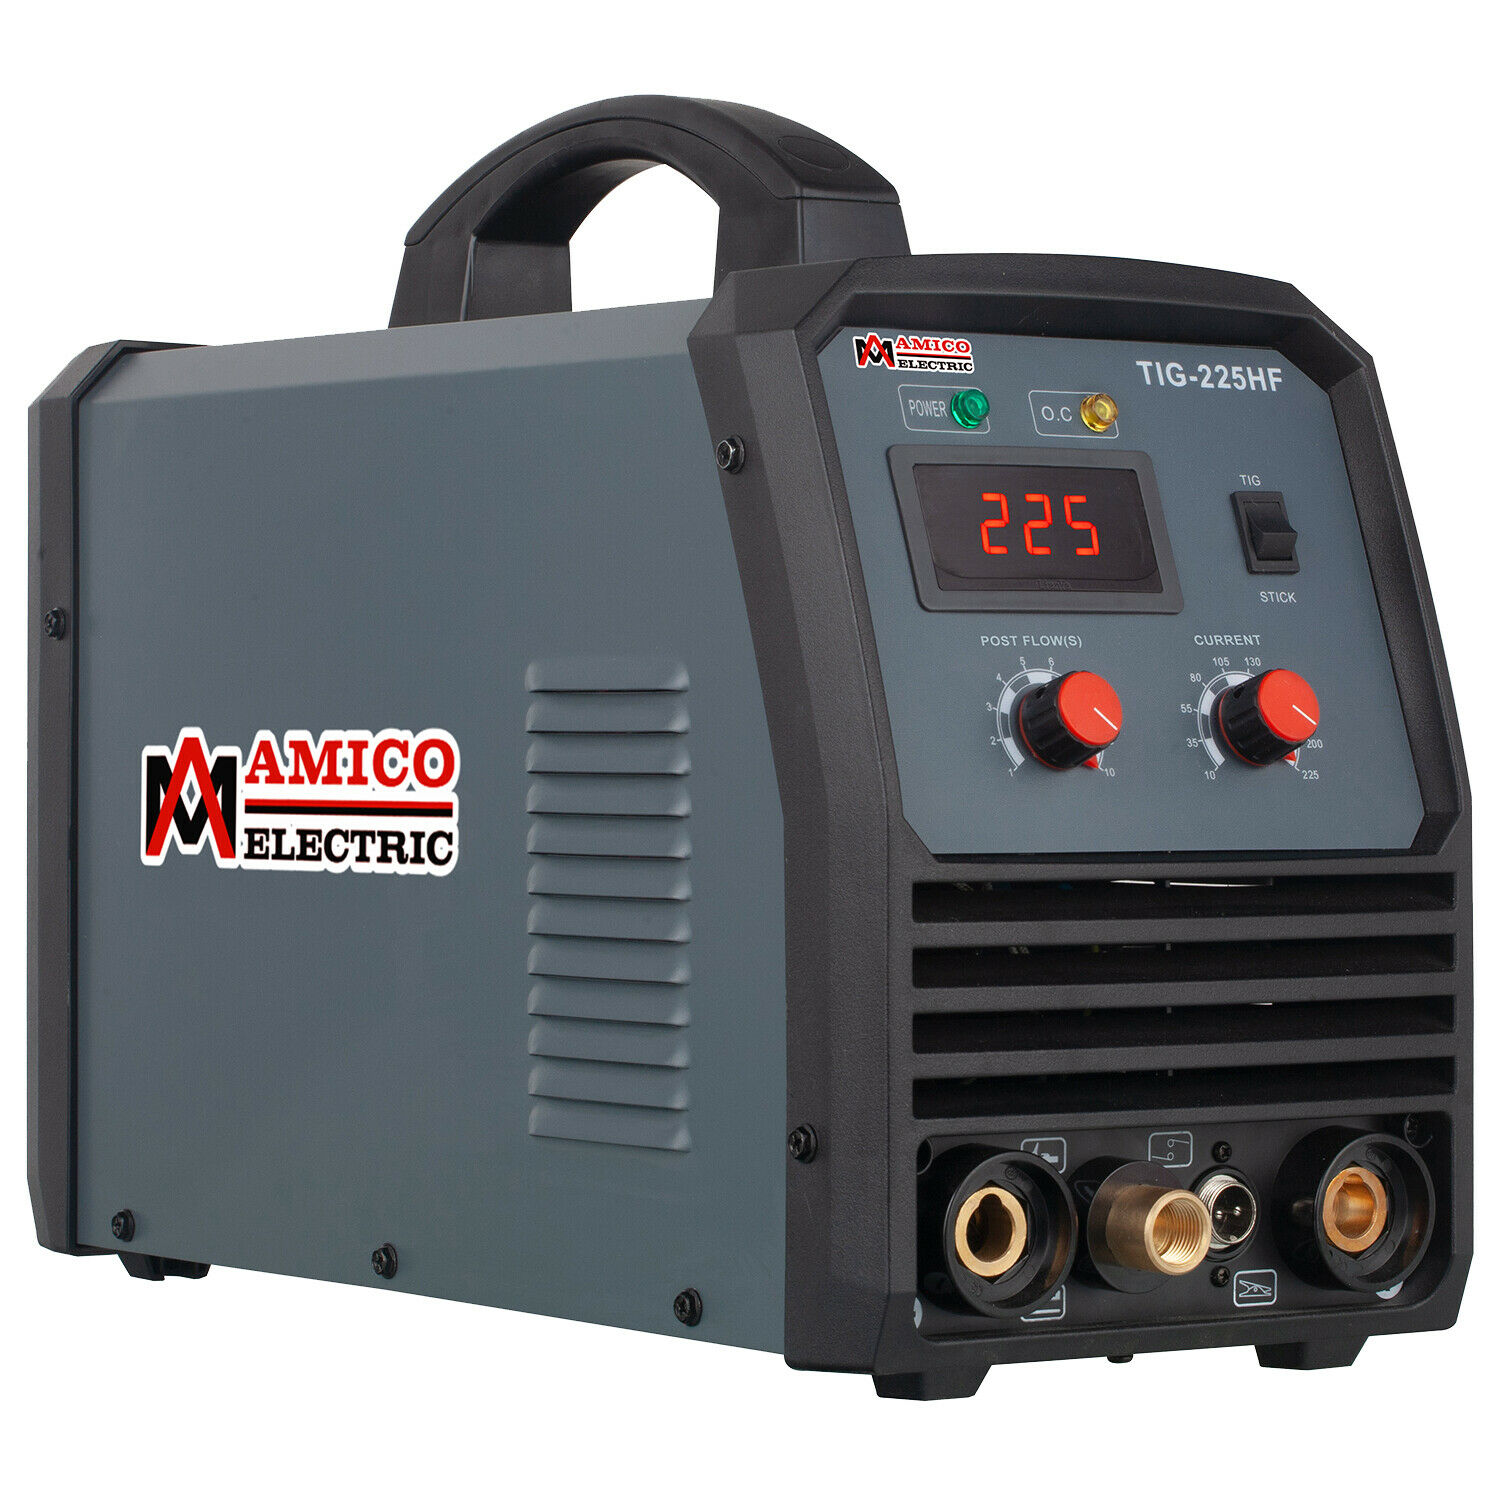 Amico TIG-225HF, 225 Amp HF-TIG Arc Stick Combo Welder, 100-250V, 80% Duty Cycle. Buy it now for 359.00